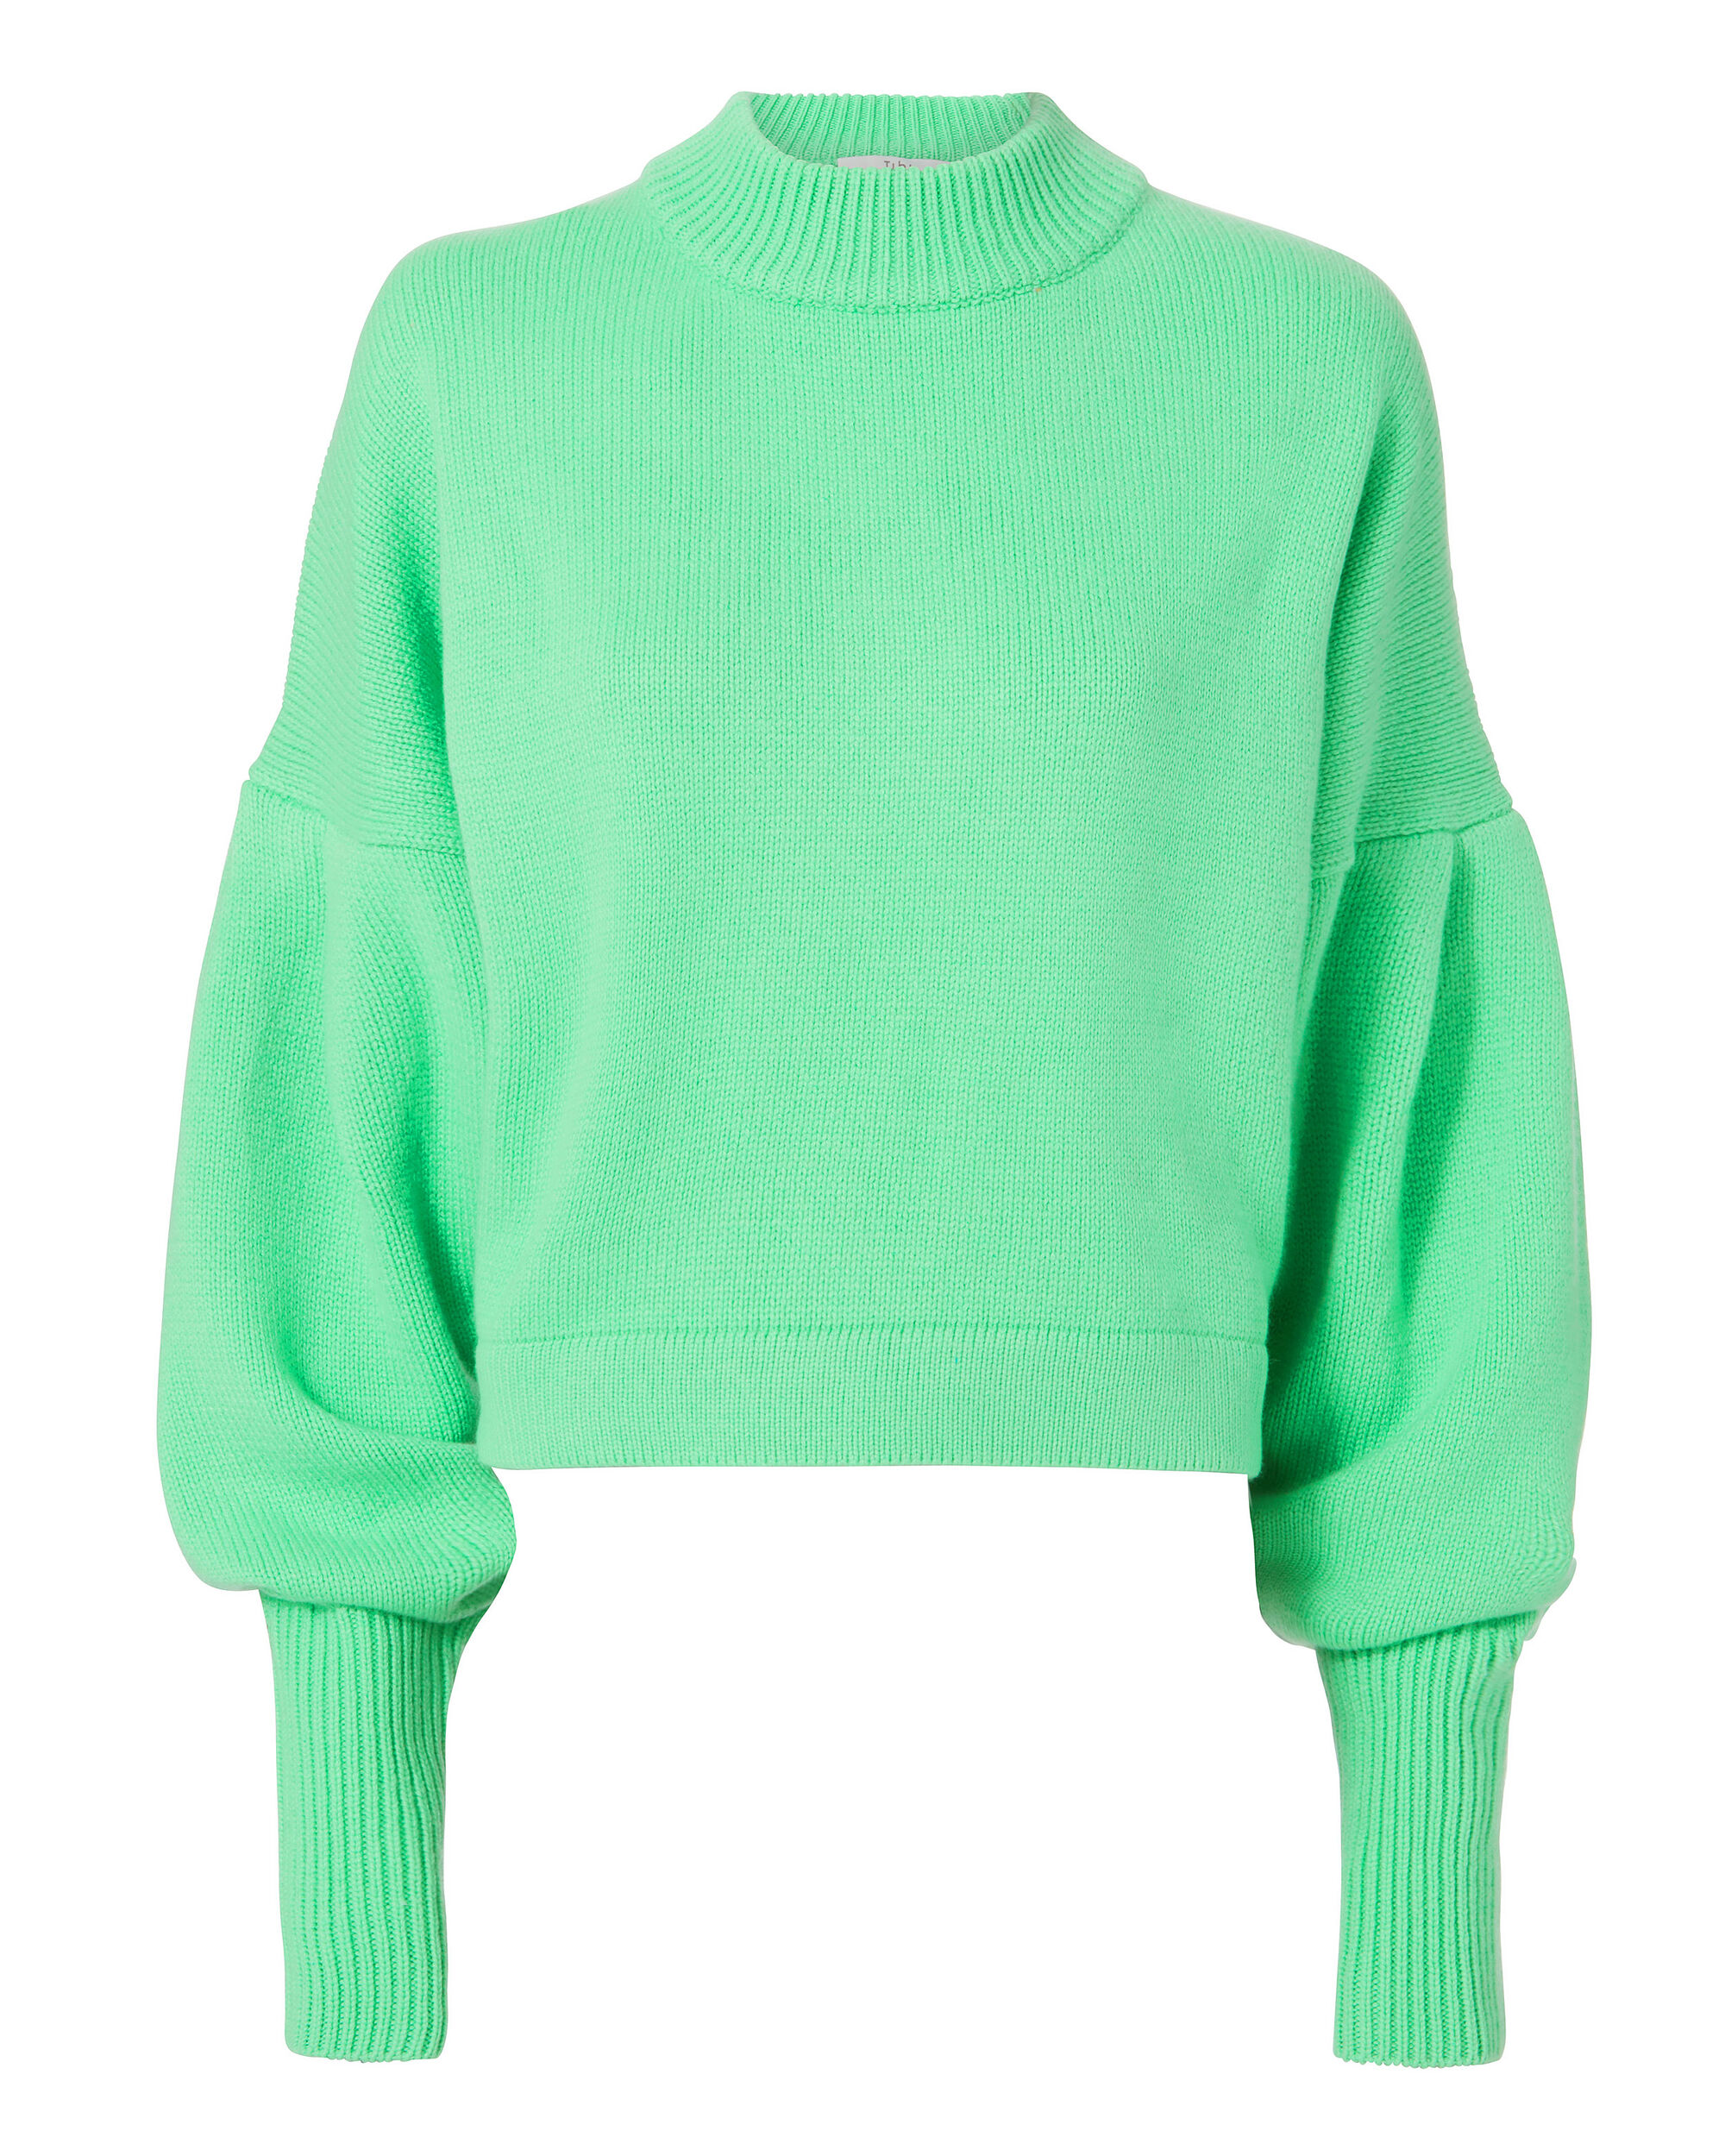 Bright Green Cropped Cashmere Pullover, GREEN, hi-res